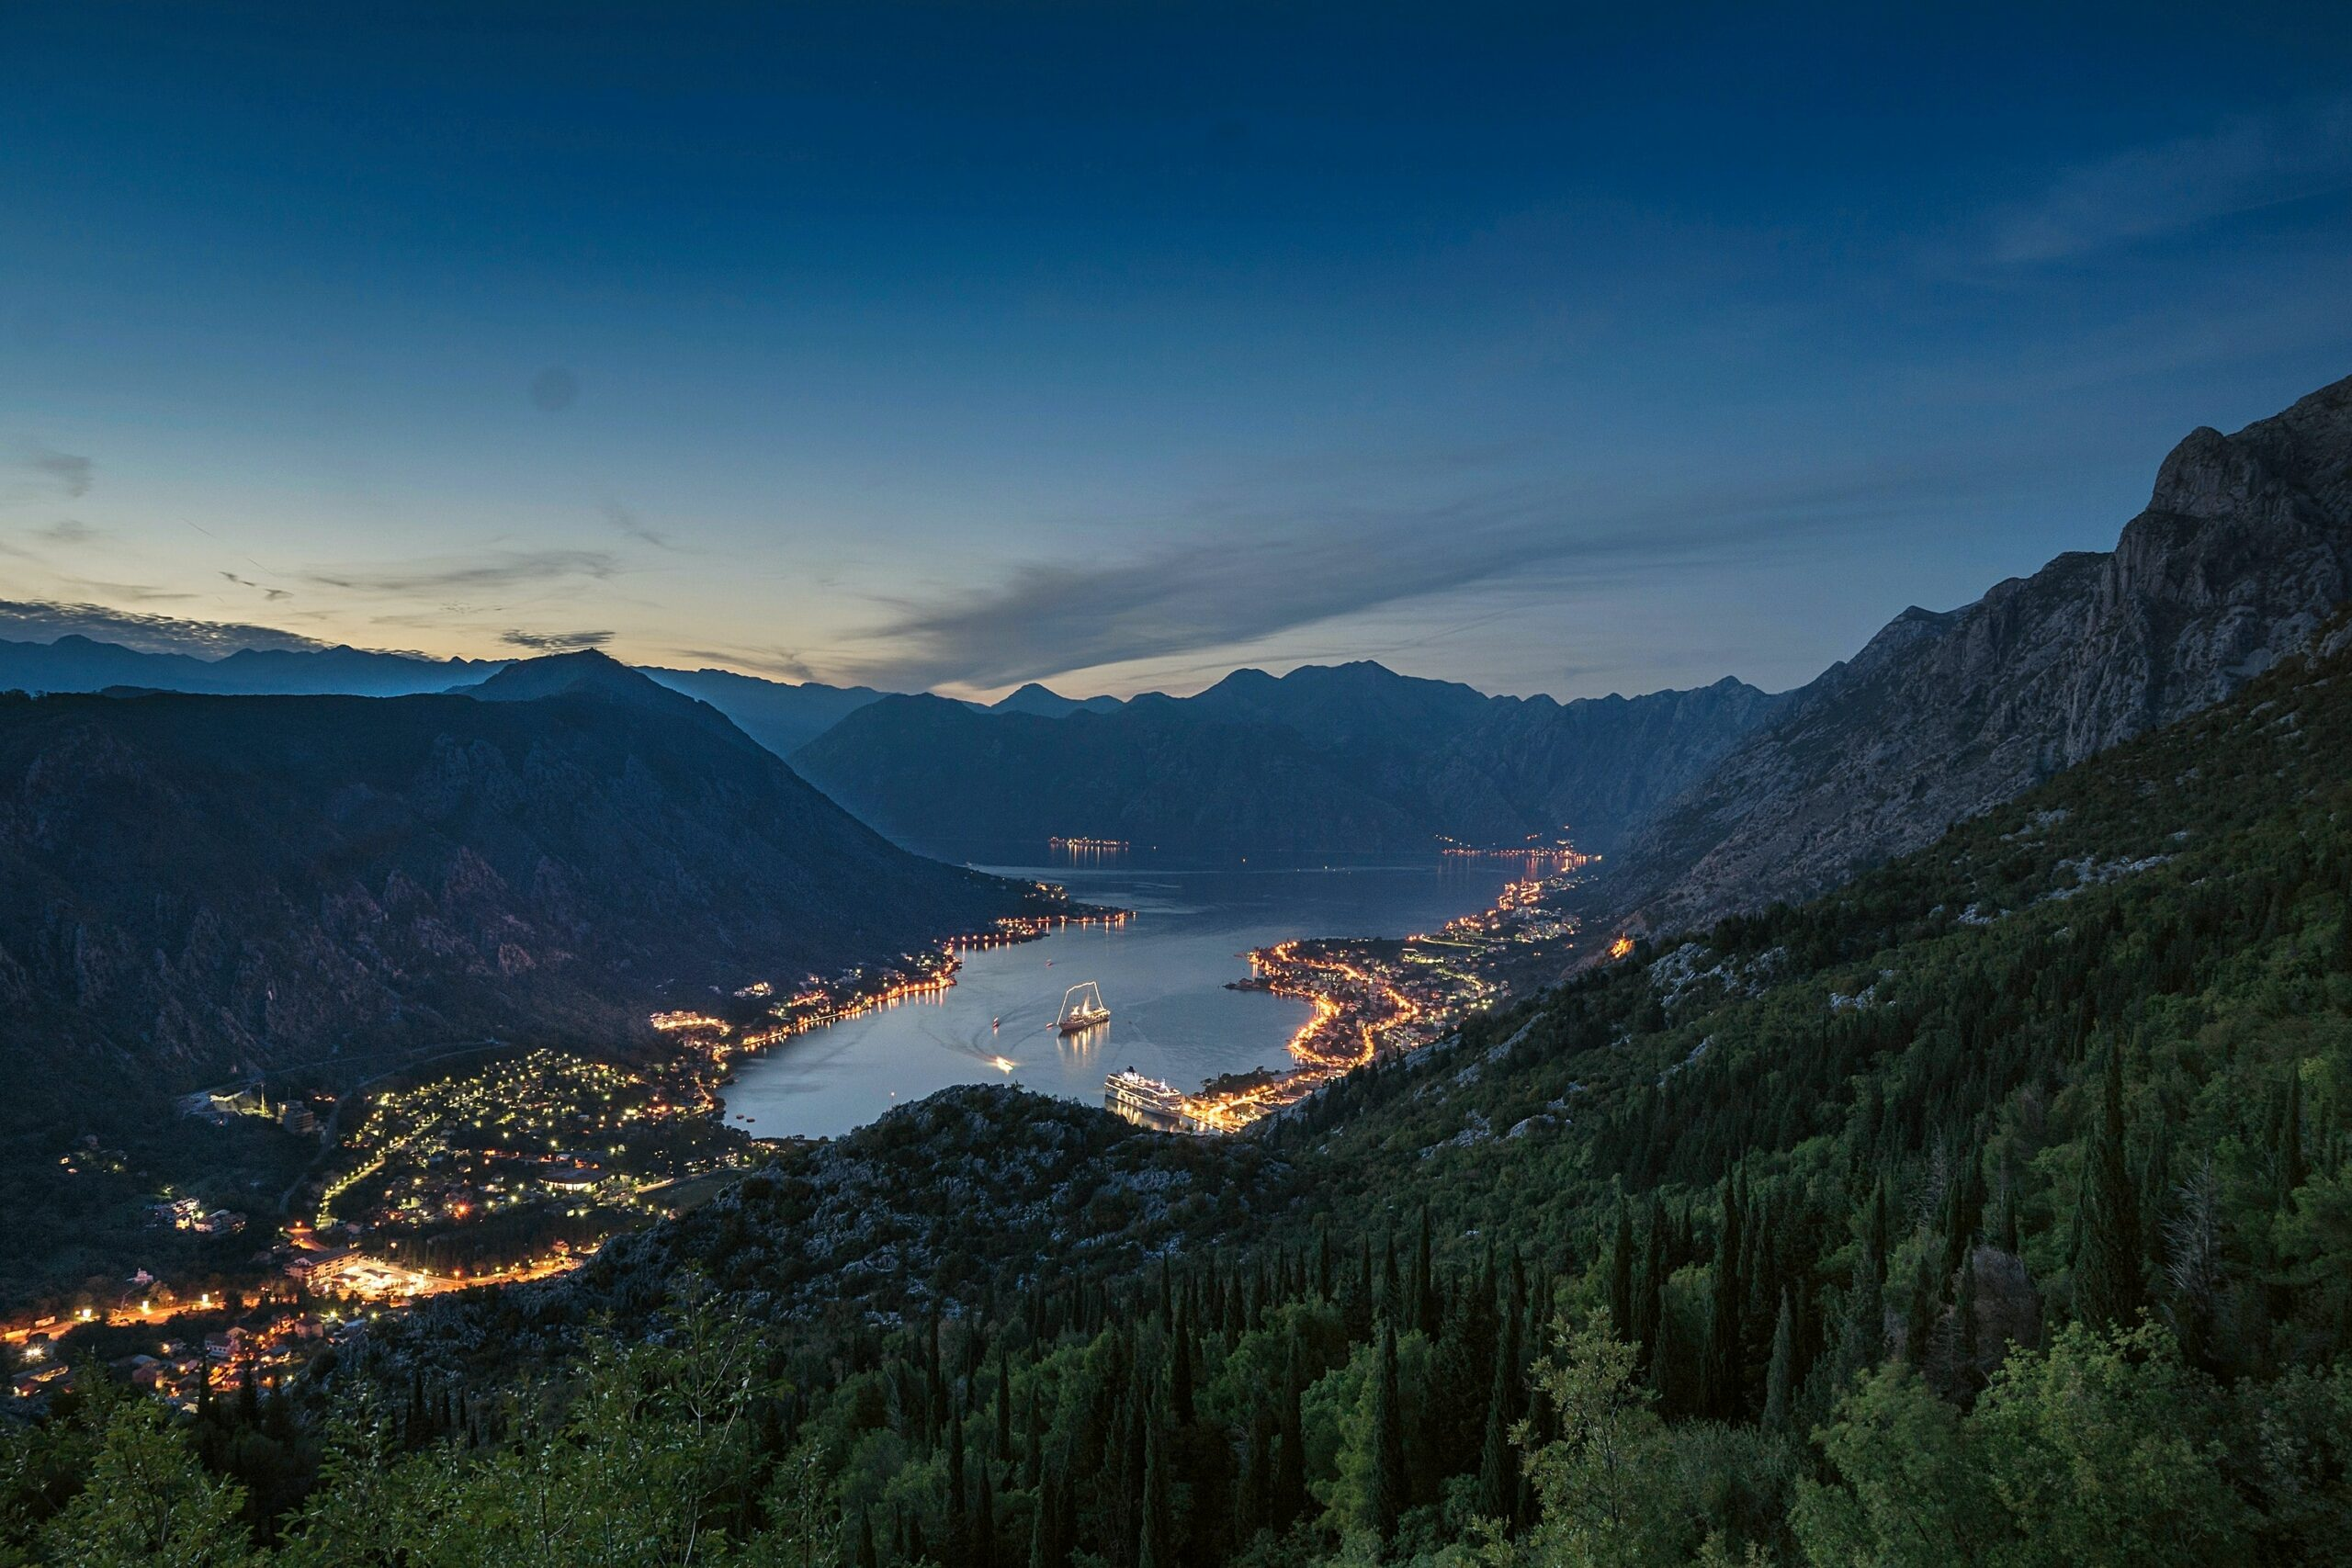 Kotor, Montenegro photographed from above at night